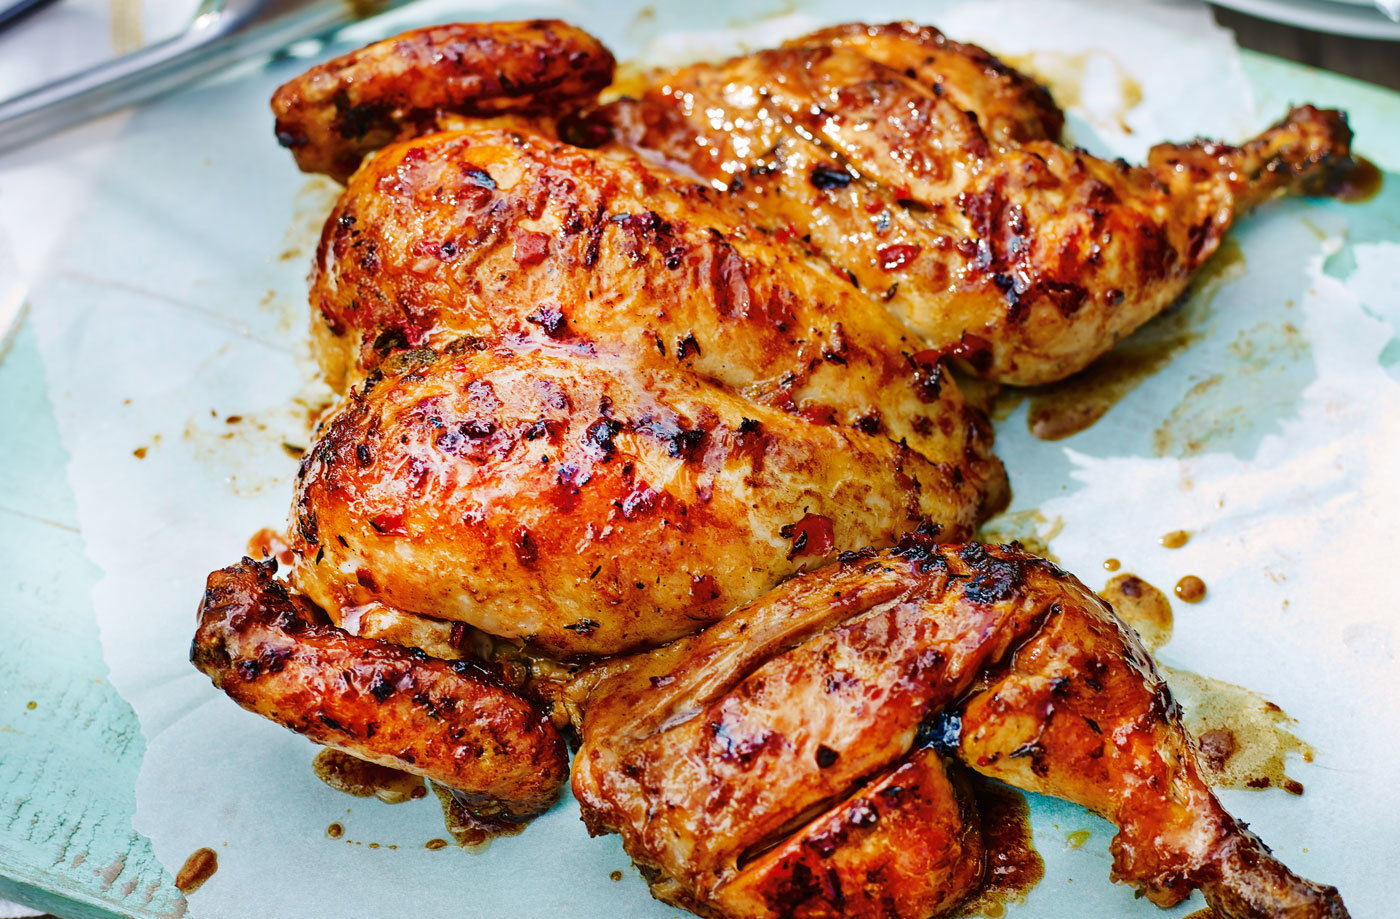 spicy and zesty chicken that is ideal for barbecues.